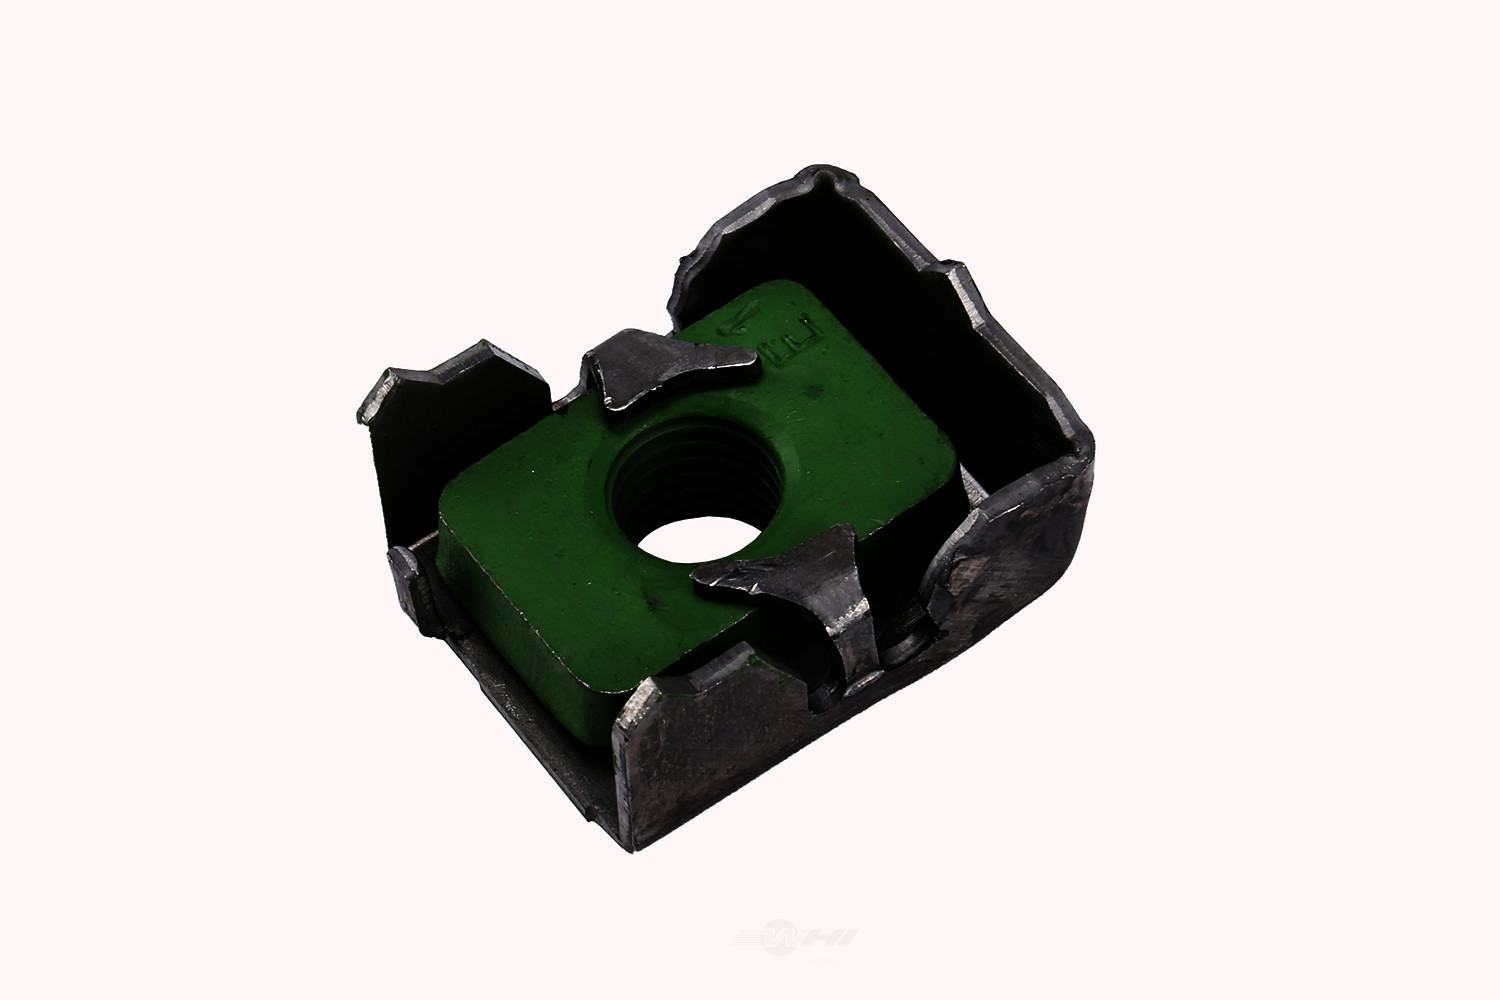 GENUINE GM PARTS - Differential Housing Nut - GMP 11518529